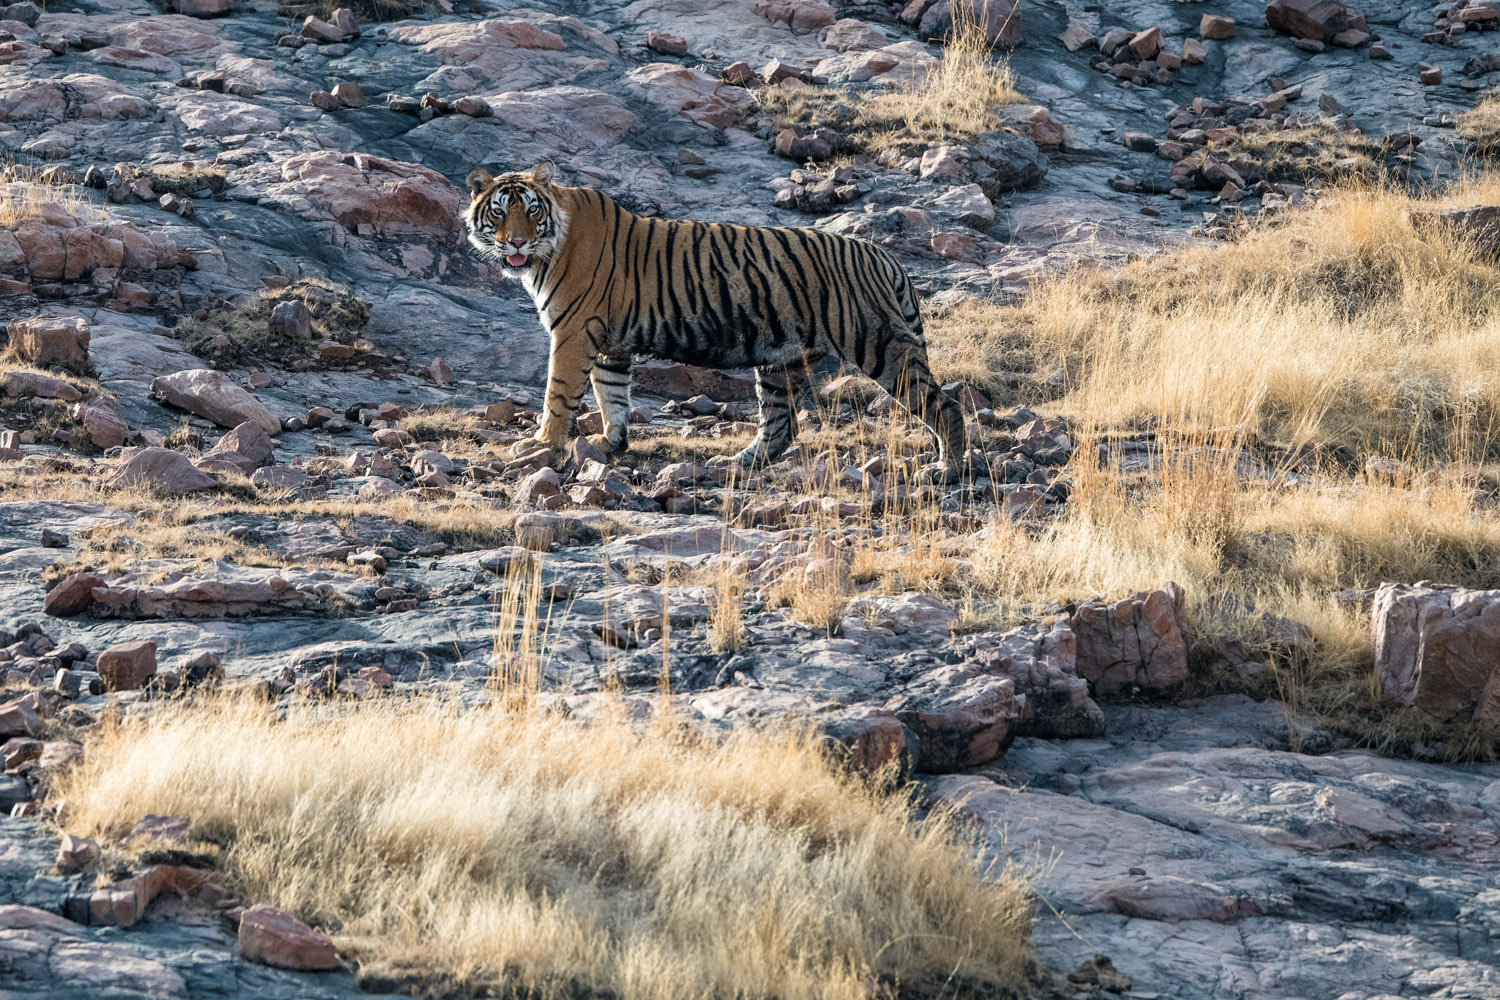 Bengal tiger on rocky slope, Ranthambhore National Park, Rajasthan, India